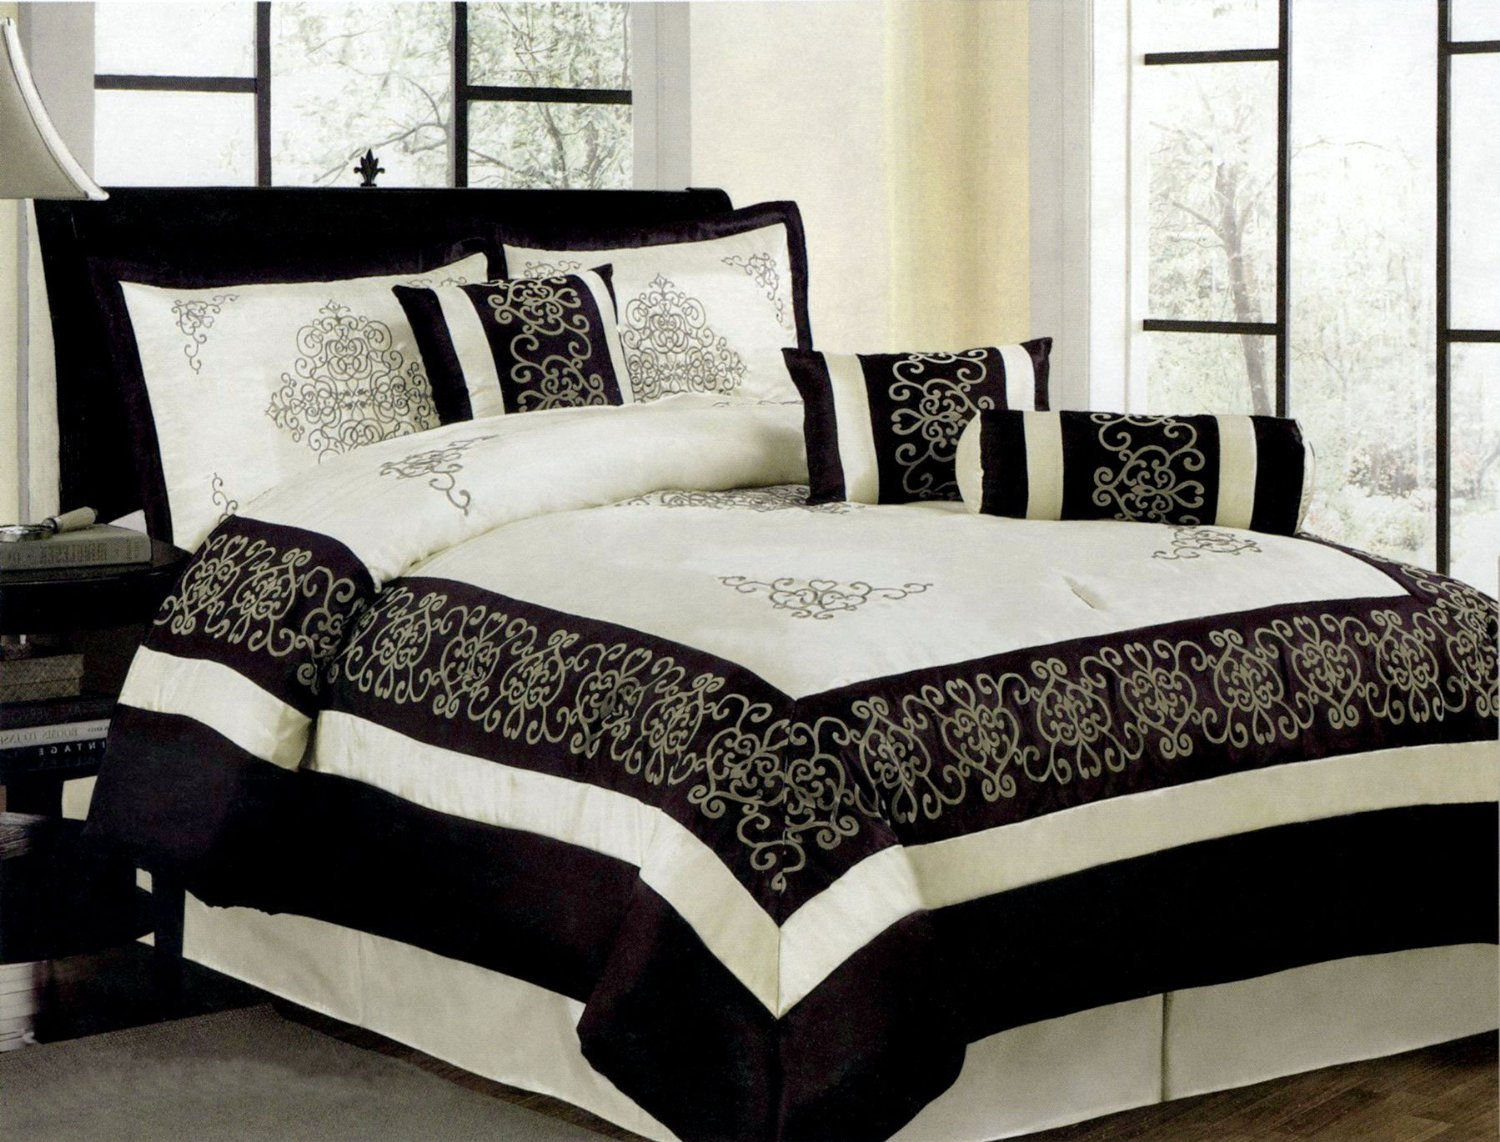 Black And Ivory Comforter & Bedding Sets